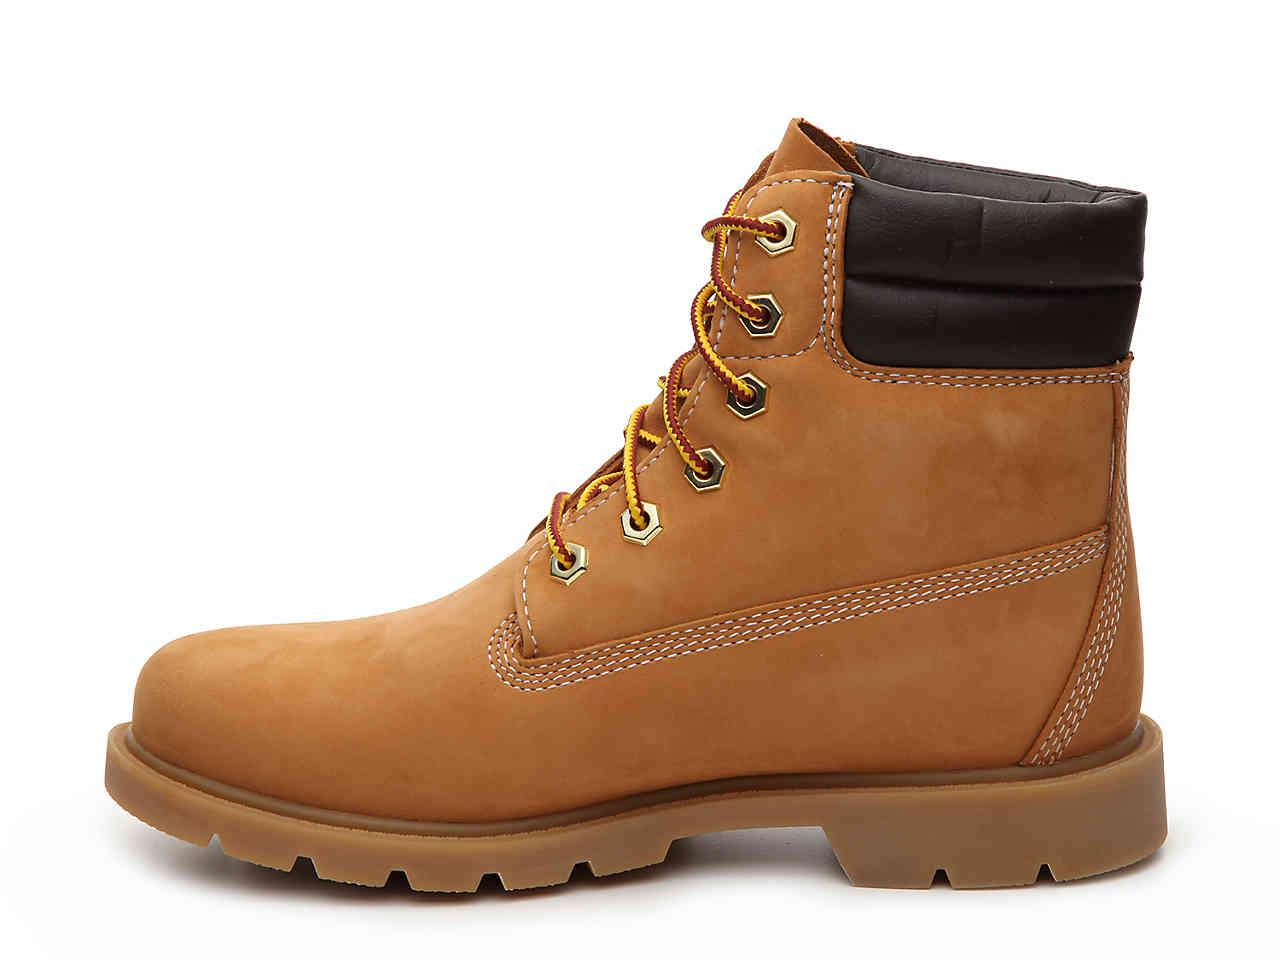 dc912755d0e1 Lyst - Timberland Linden Woods Bootie in Brown